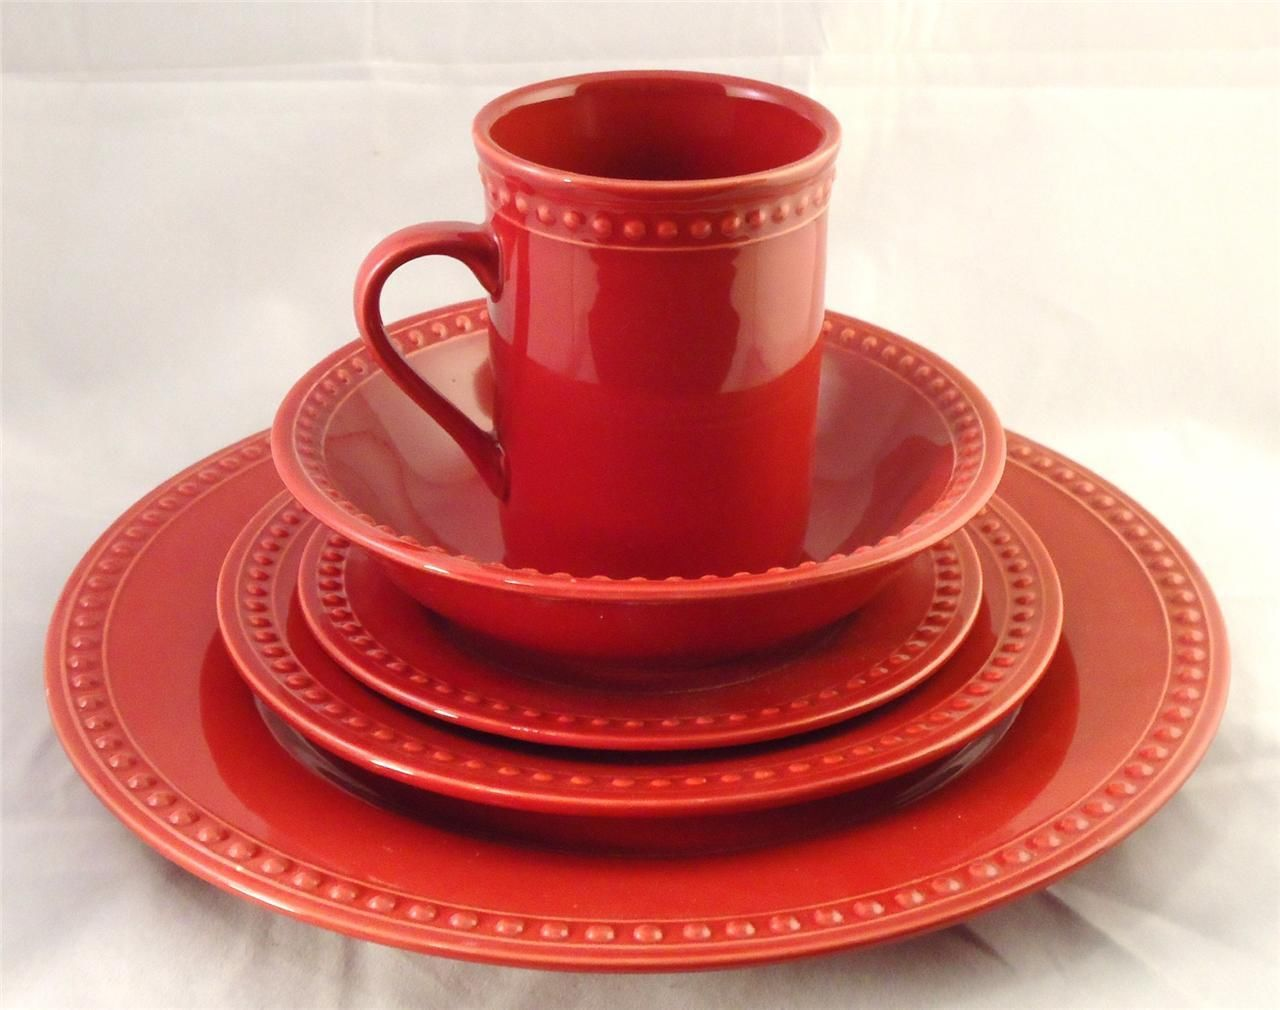 JC PENNEY Home Dinnerware 5 Piece Place Setting for 6 Red  : dinnerware from robinsgeneralstore.org size 1280 x 1010 jpeg 114kB